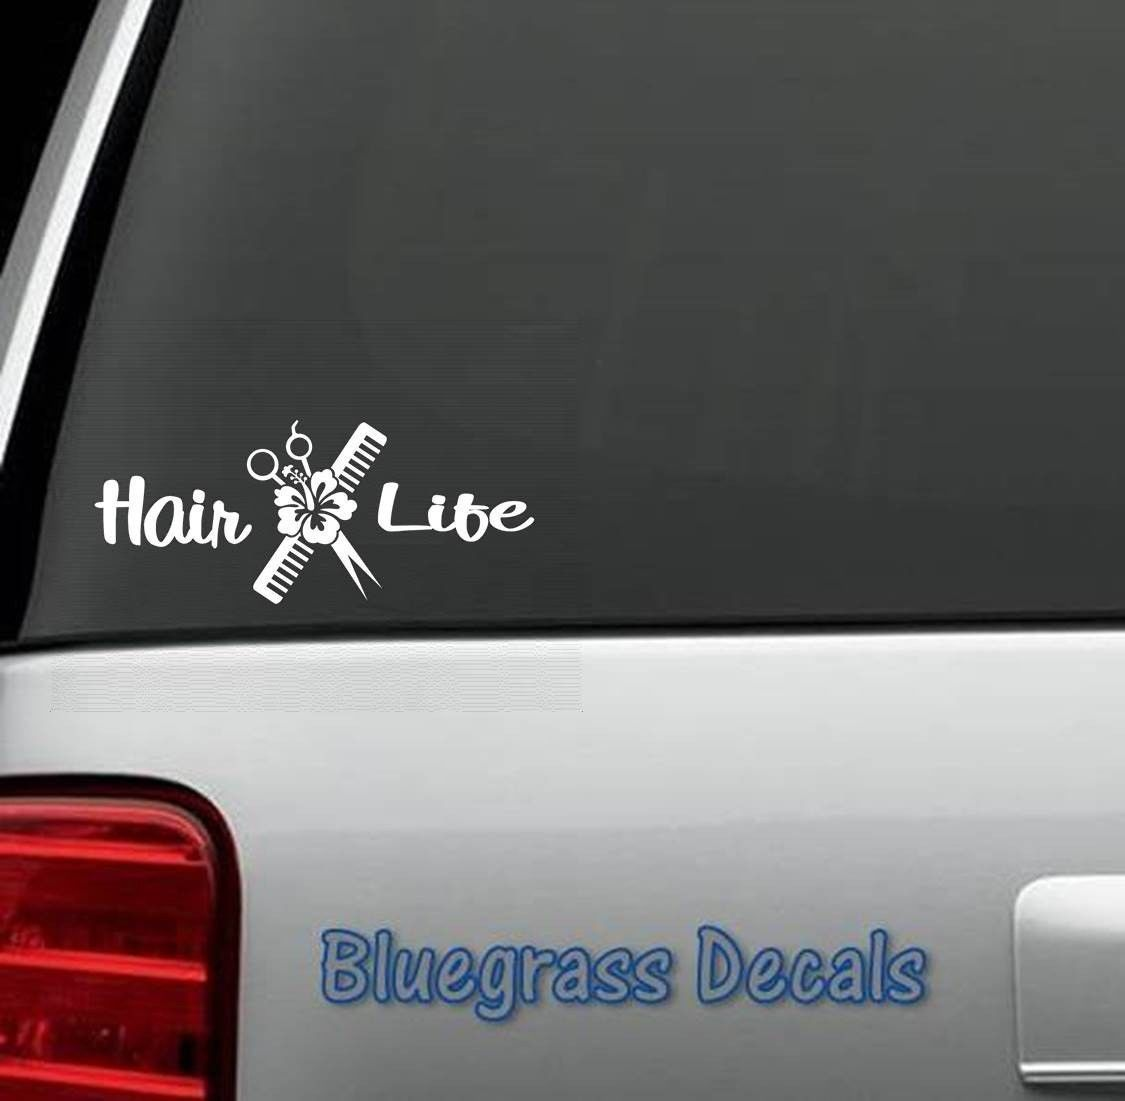 Hair Life Decal Sticker Stylist Salon Scissors Hibiscus For Car Window A1068 Hair Life Life Decals [ 1101 x 1125 Pixel ]